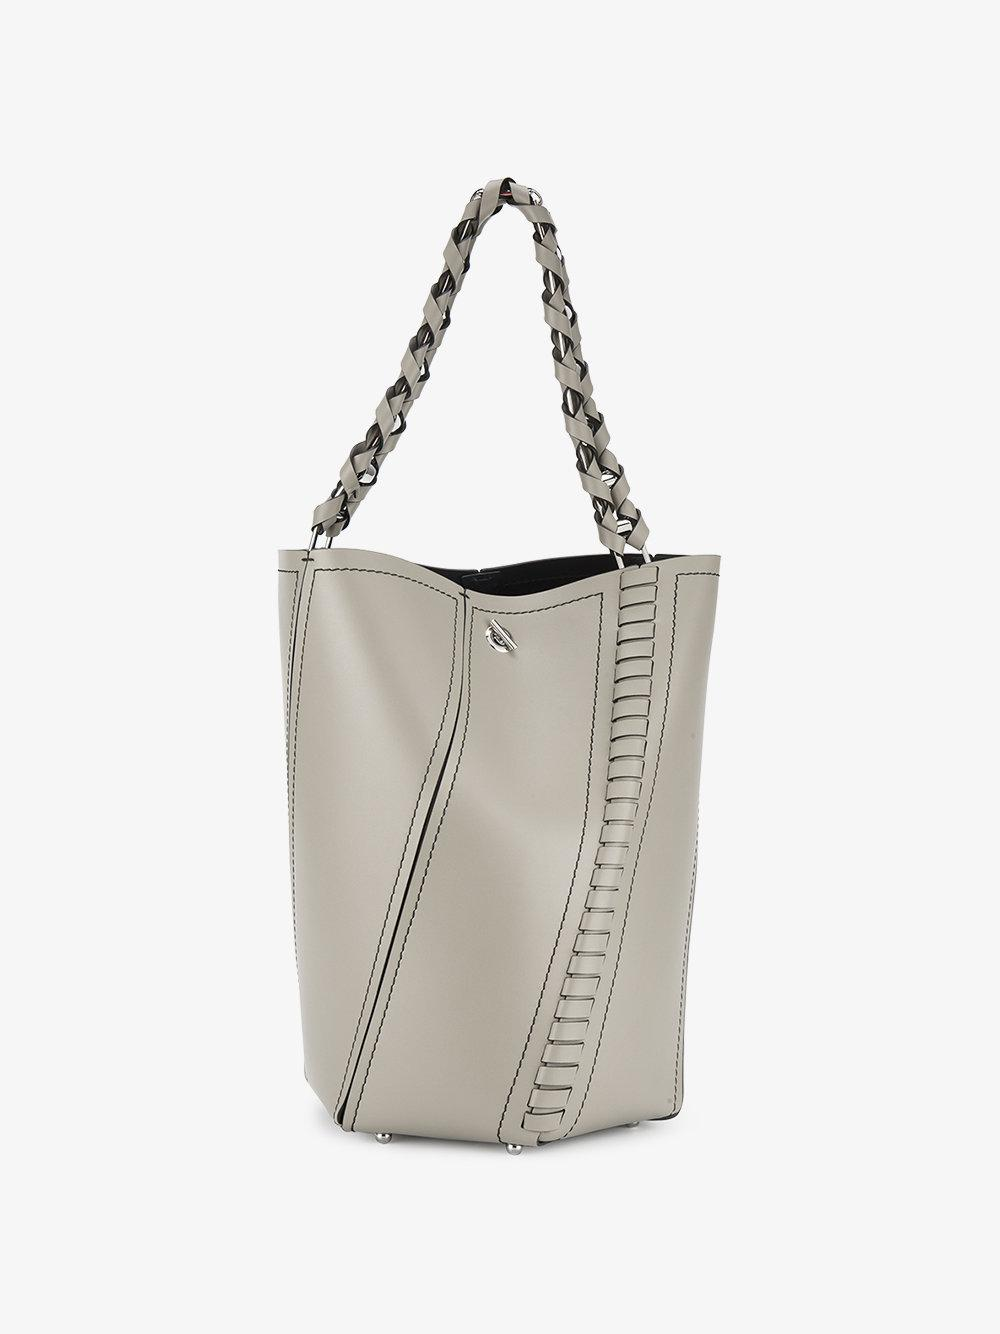 2018 Newest Hex tote - Nude & Neutrals Proenza Schouler Low Shipping Fee Online Free Shipping Huge Surprise Outlet Geniue Stockist 07tFJc